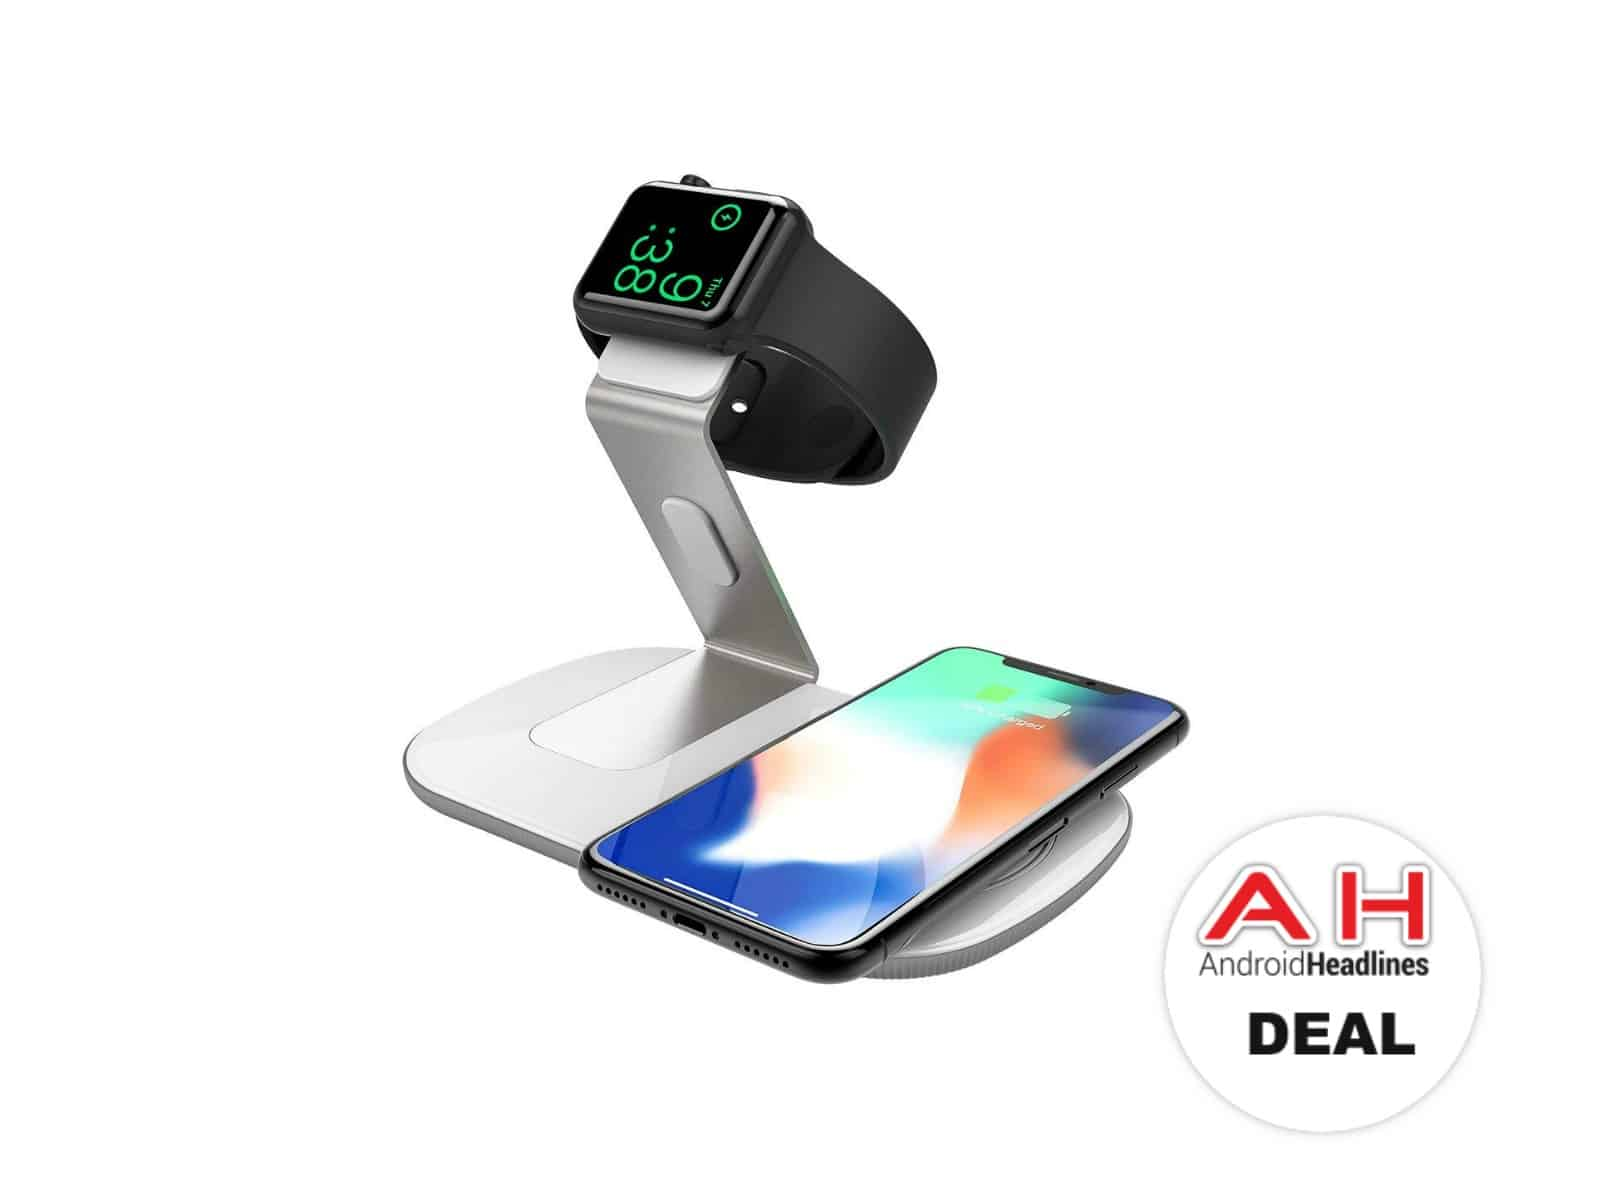 Seneo Wireless Charging Pad Deal AH